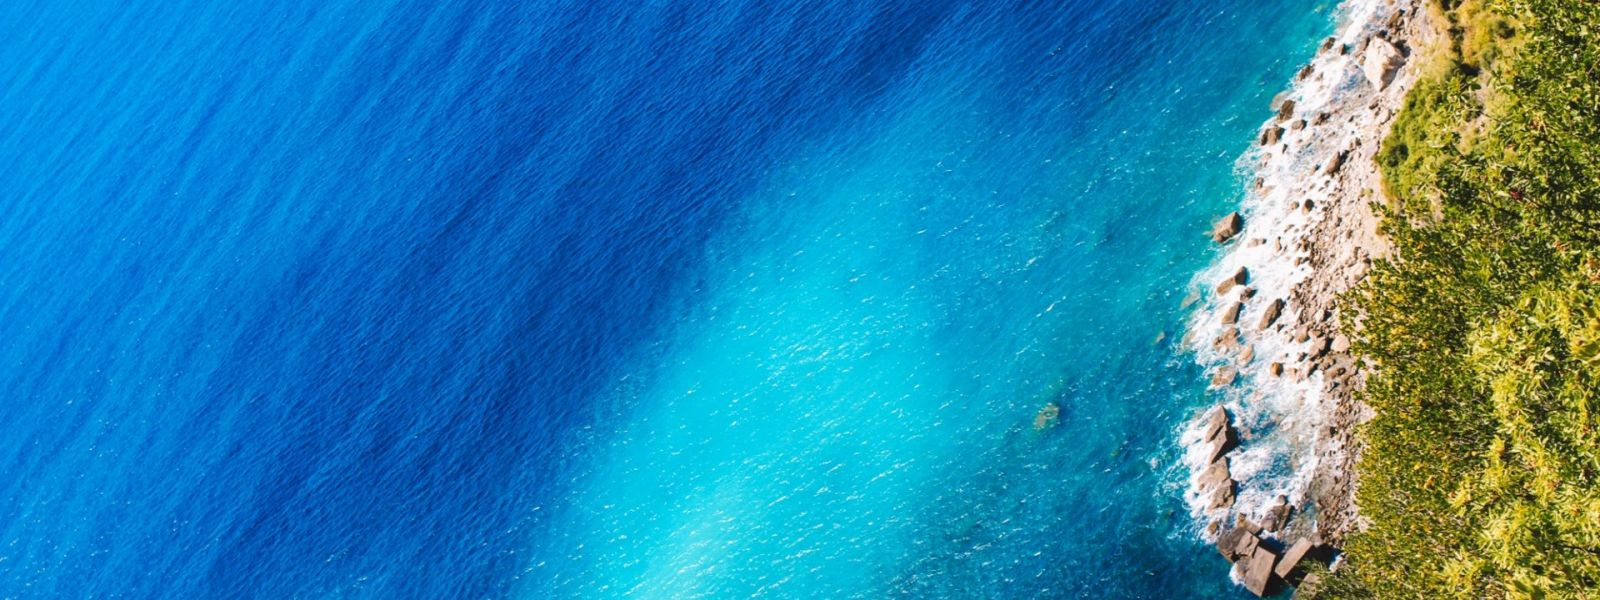 Aerial sea view with turquoise waters, pebbles beach and green vegetation